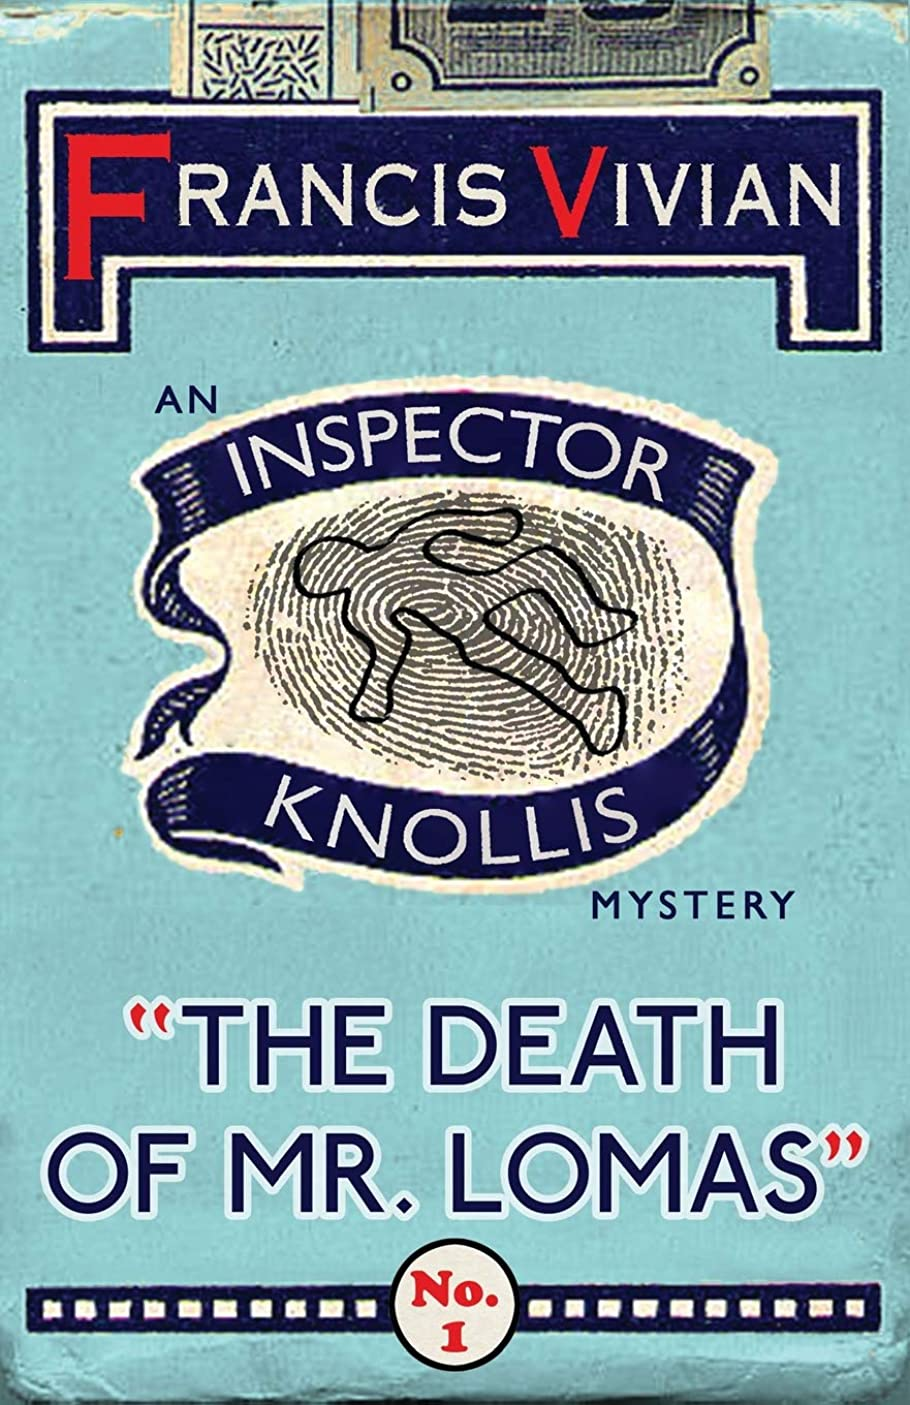 スクレーパーリンスキャンディーThe Death of Mr. Lomas: An Inspector Knollis Mystery (The Inspector Knollis Mysteries)